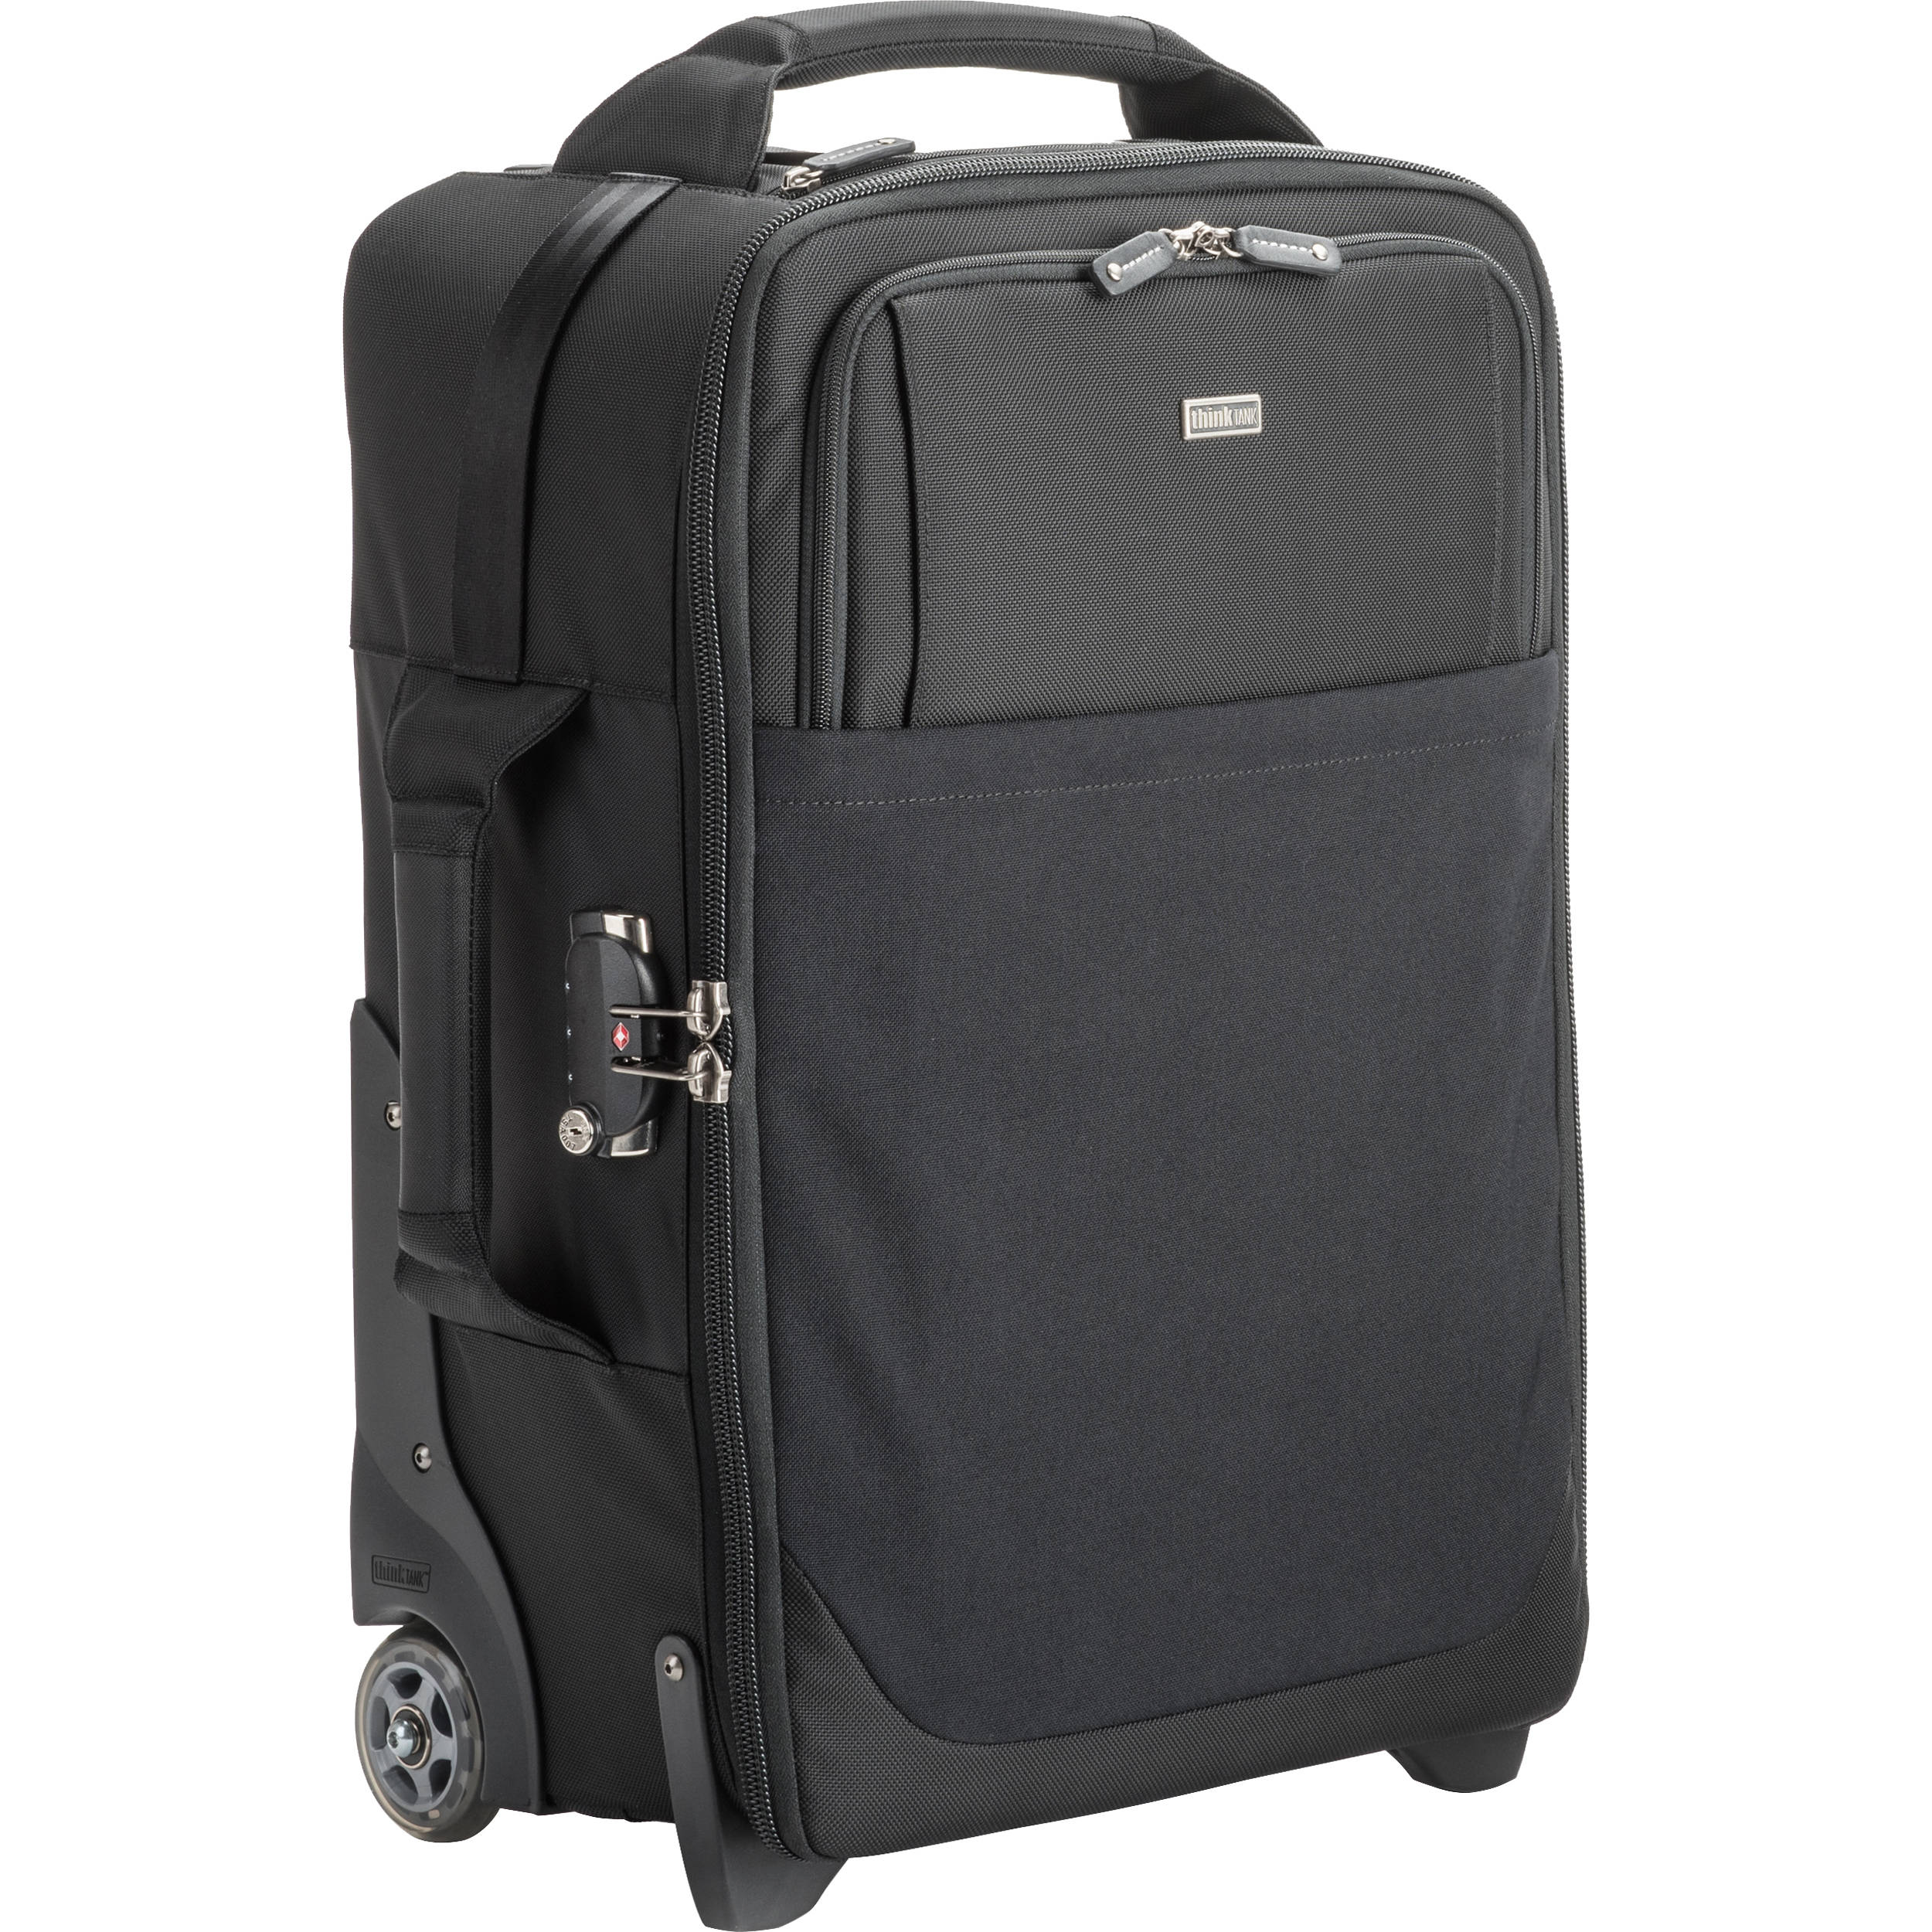 7c224bb4af1b Think Tank Photo Airport Security V3.0 Carry On (Black)